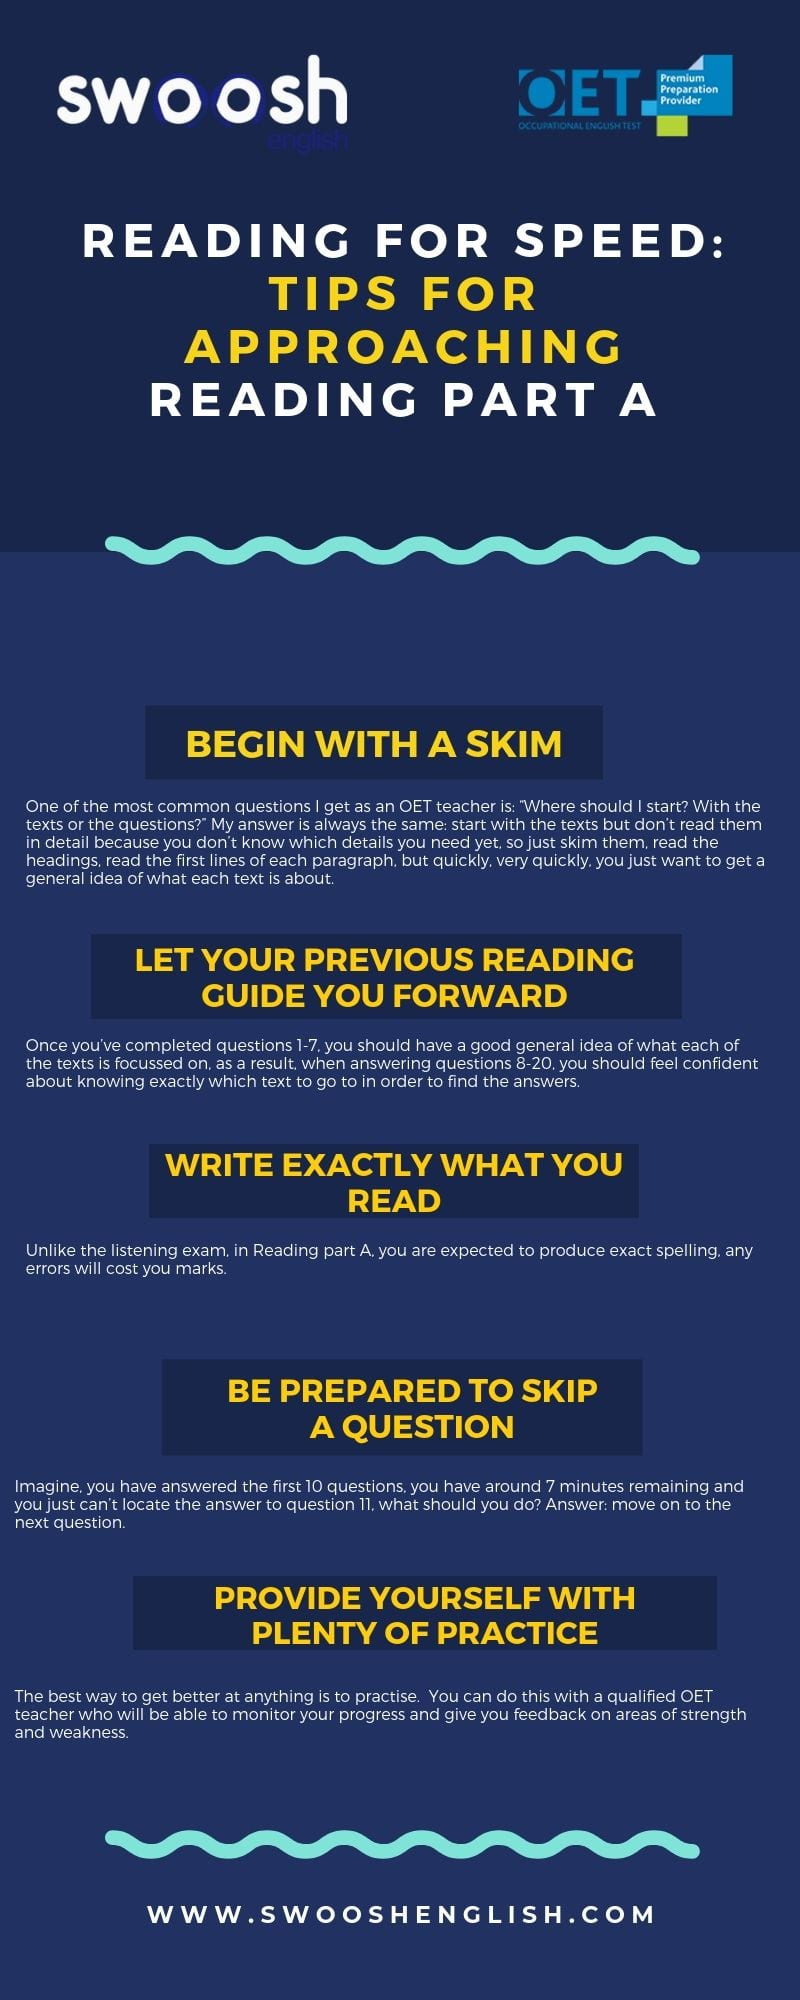 Reading for Speed: Tips for approaching reading part A infographic